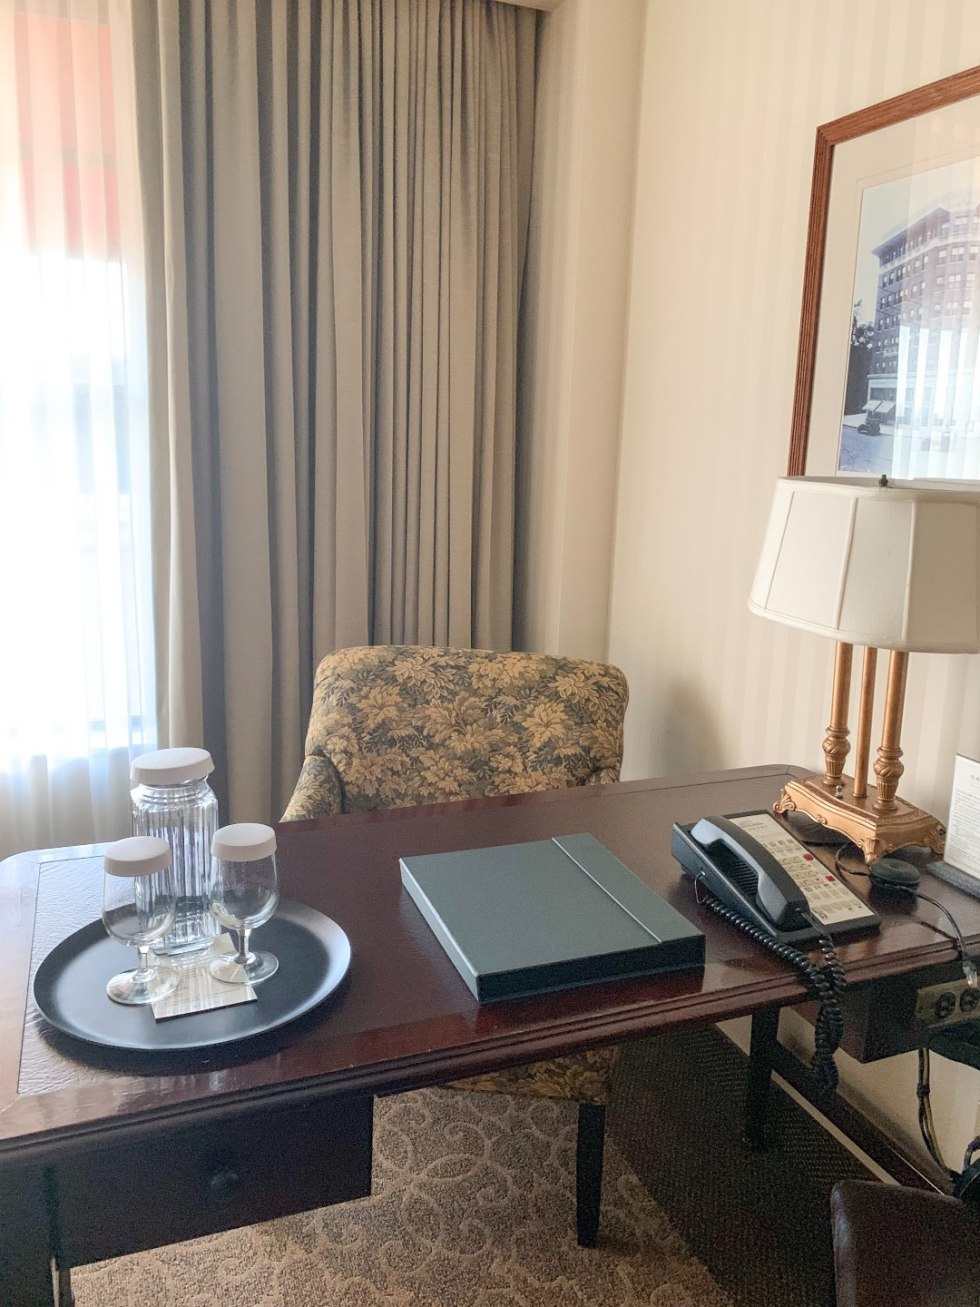 A Night at the O.Henry Hotel In Greensboro, NC - I'm Fixin' To - @mbg0112 | A Night at the O.Henry Hotel In Greensboro, NC by popular North Carolina blog, I'm fixin' To: image of a desk in a king room at the O. Henry Hotel.